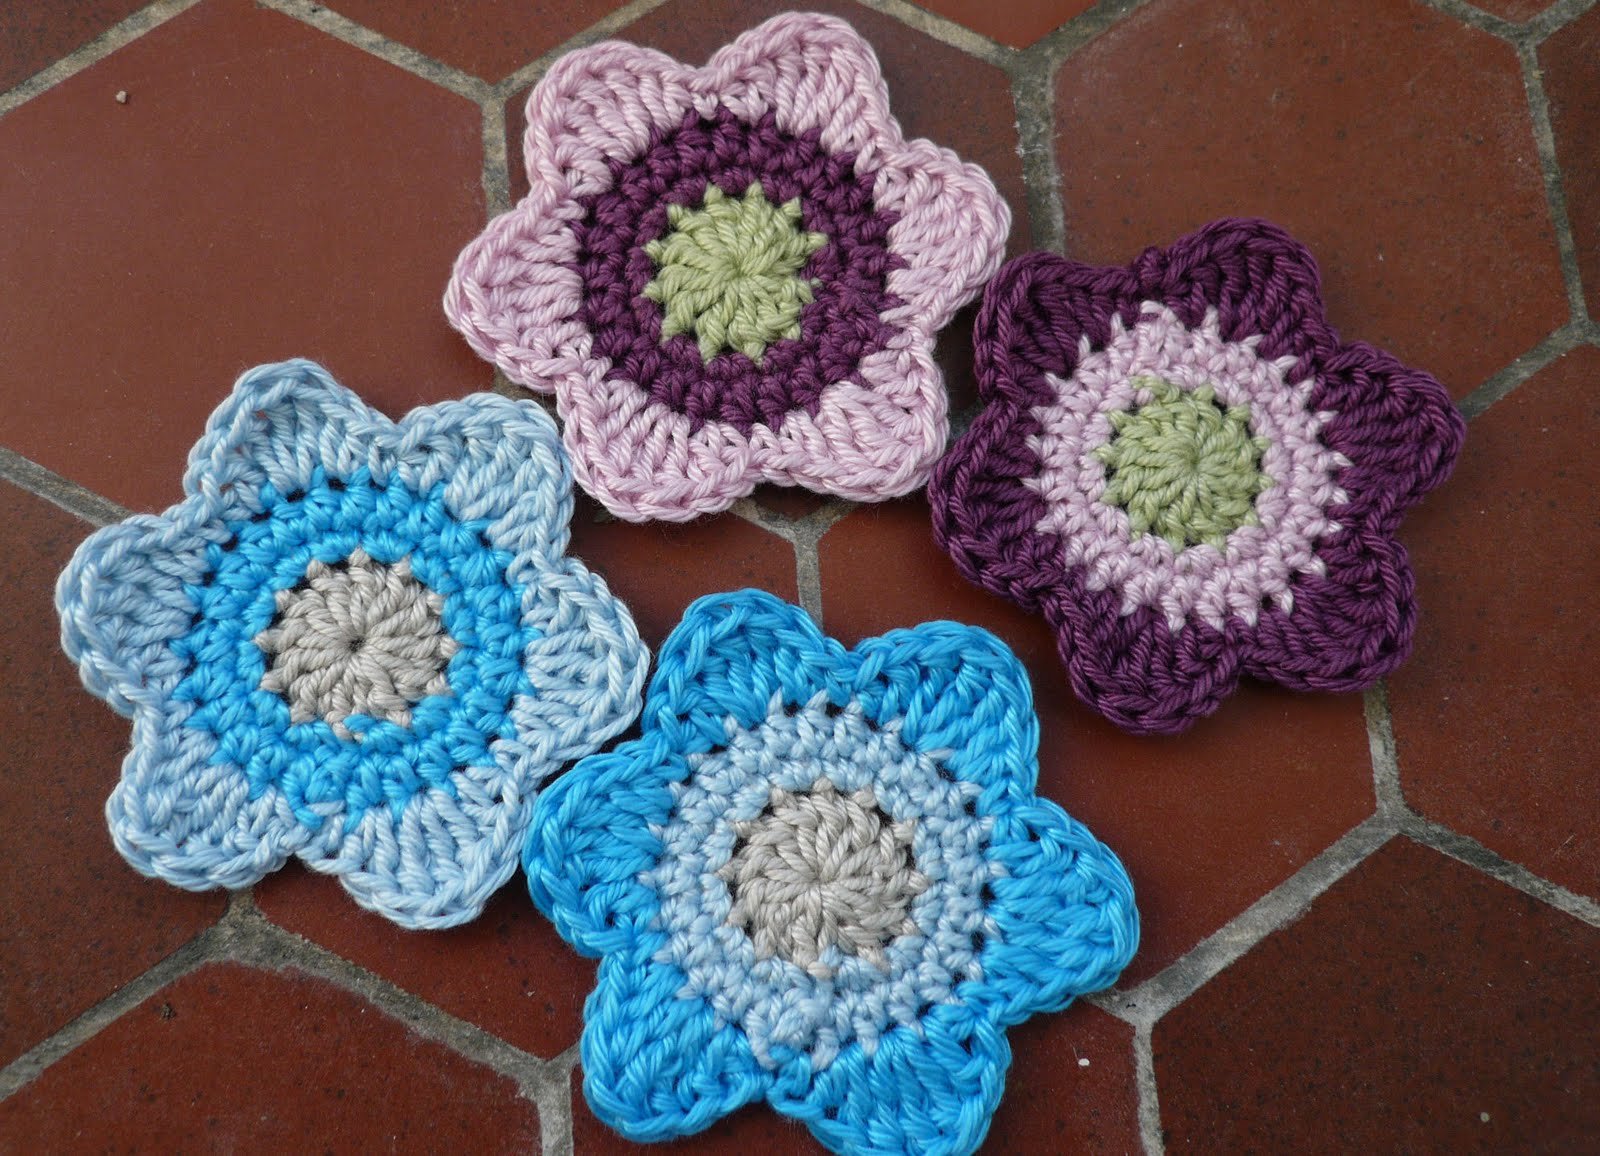 FREE CROCHET PATTERN FOR FLOWERS AND DRAGON FLIES